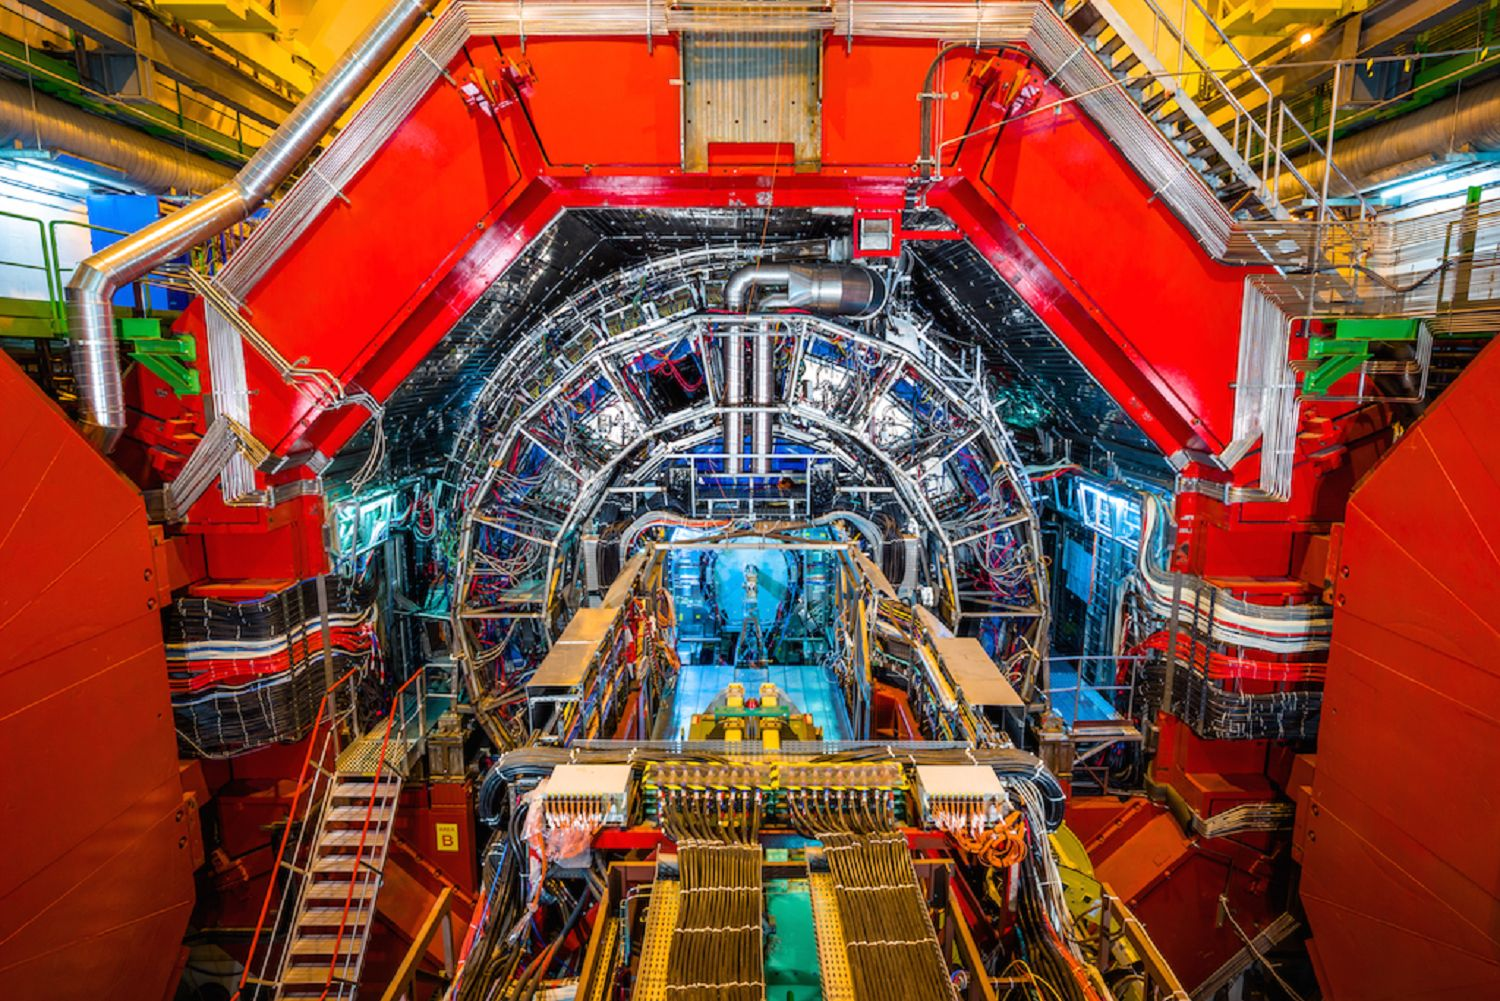 The Large Hadron Collider the world's largest and most powerful particle accelerator.